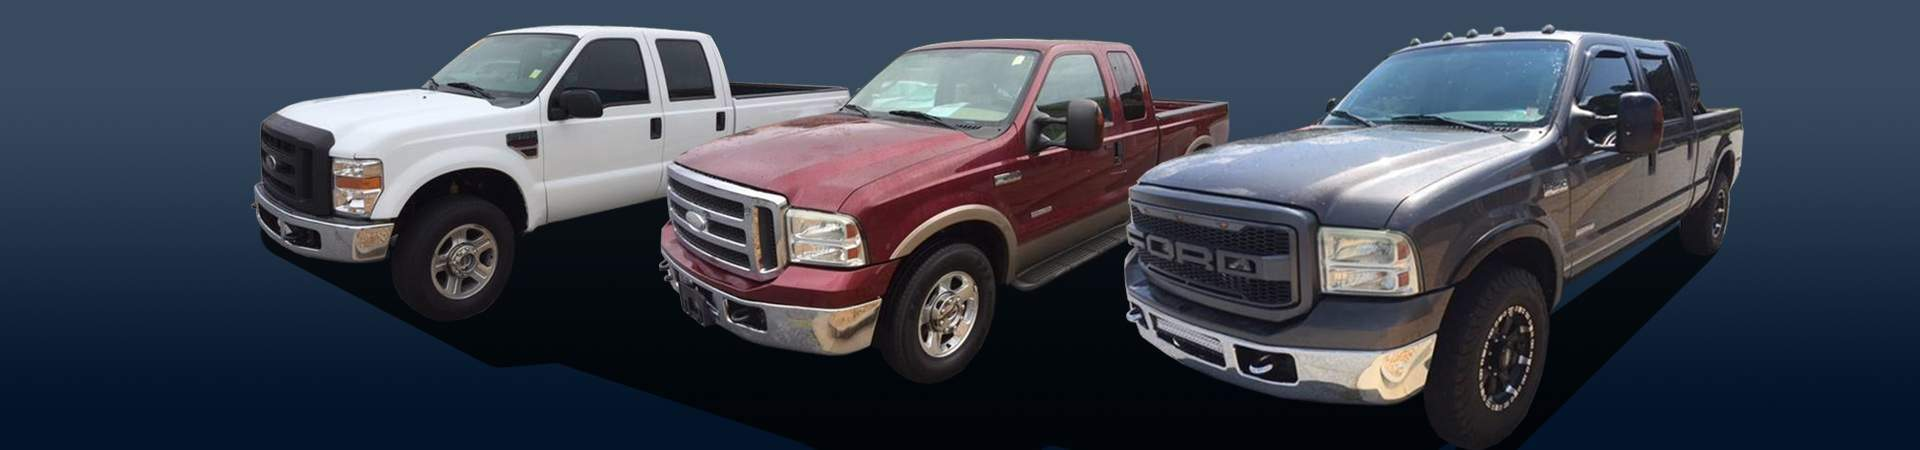 Used Vehicles in Riverdale, GA